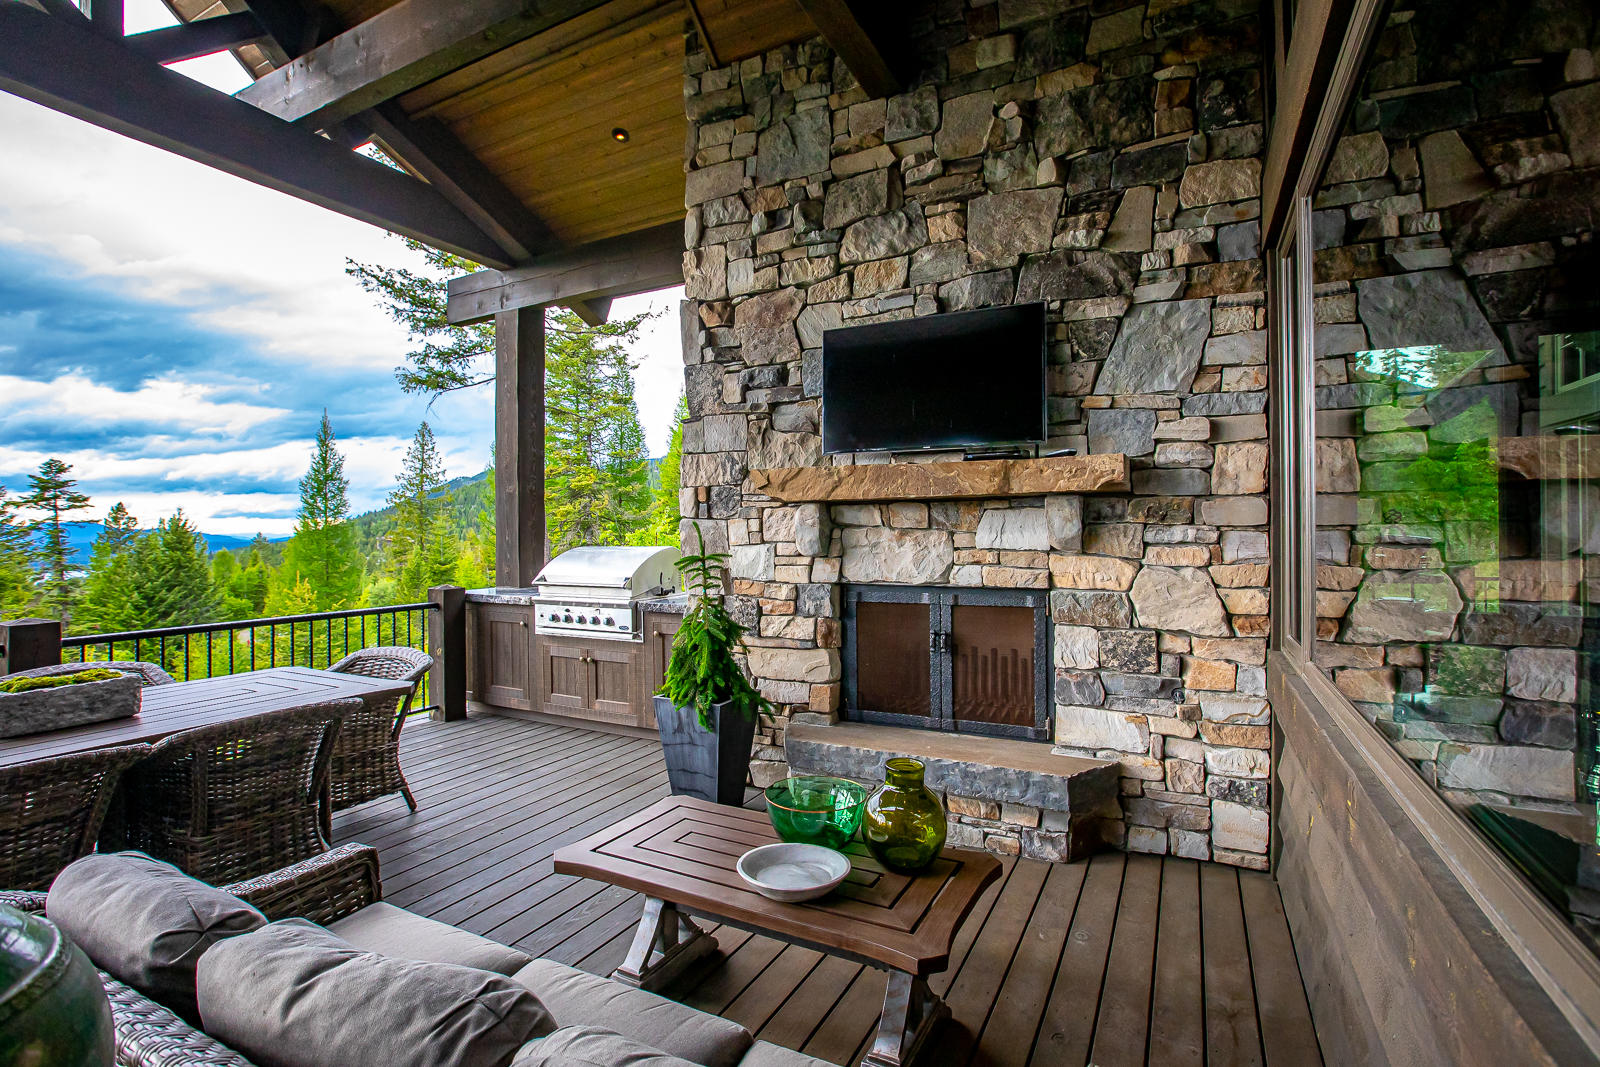 Deck Seating and Fireplace